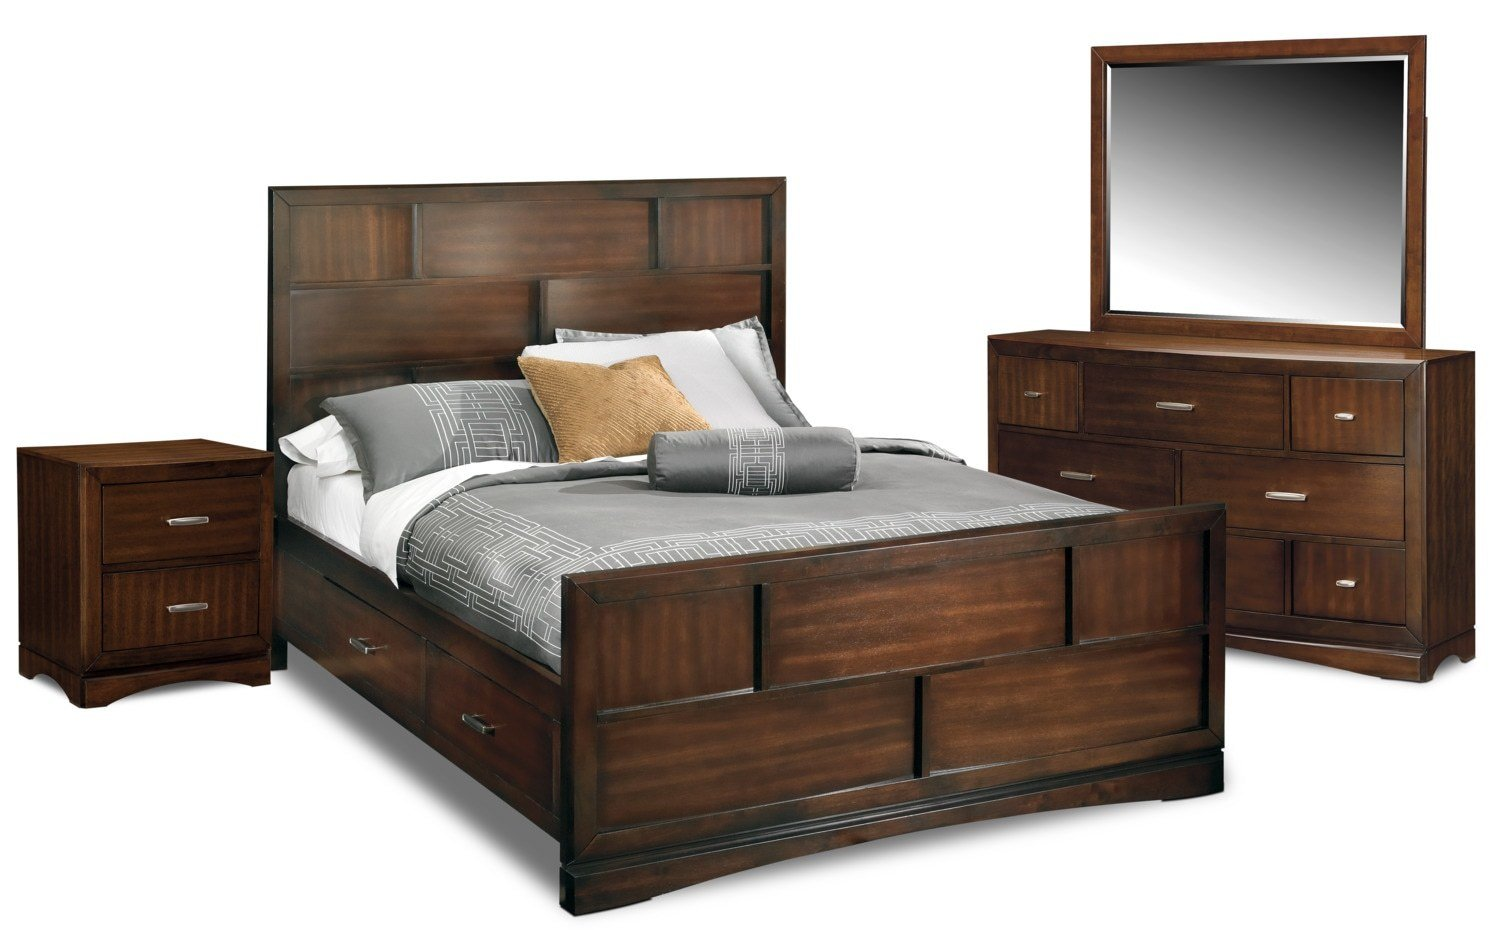 Best Toronto 6 Piece Queen Storage Bedroom Set Pecan Value With Pictures